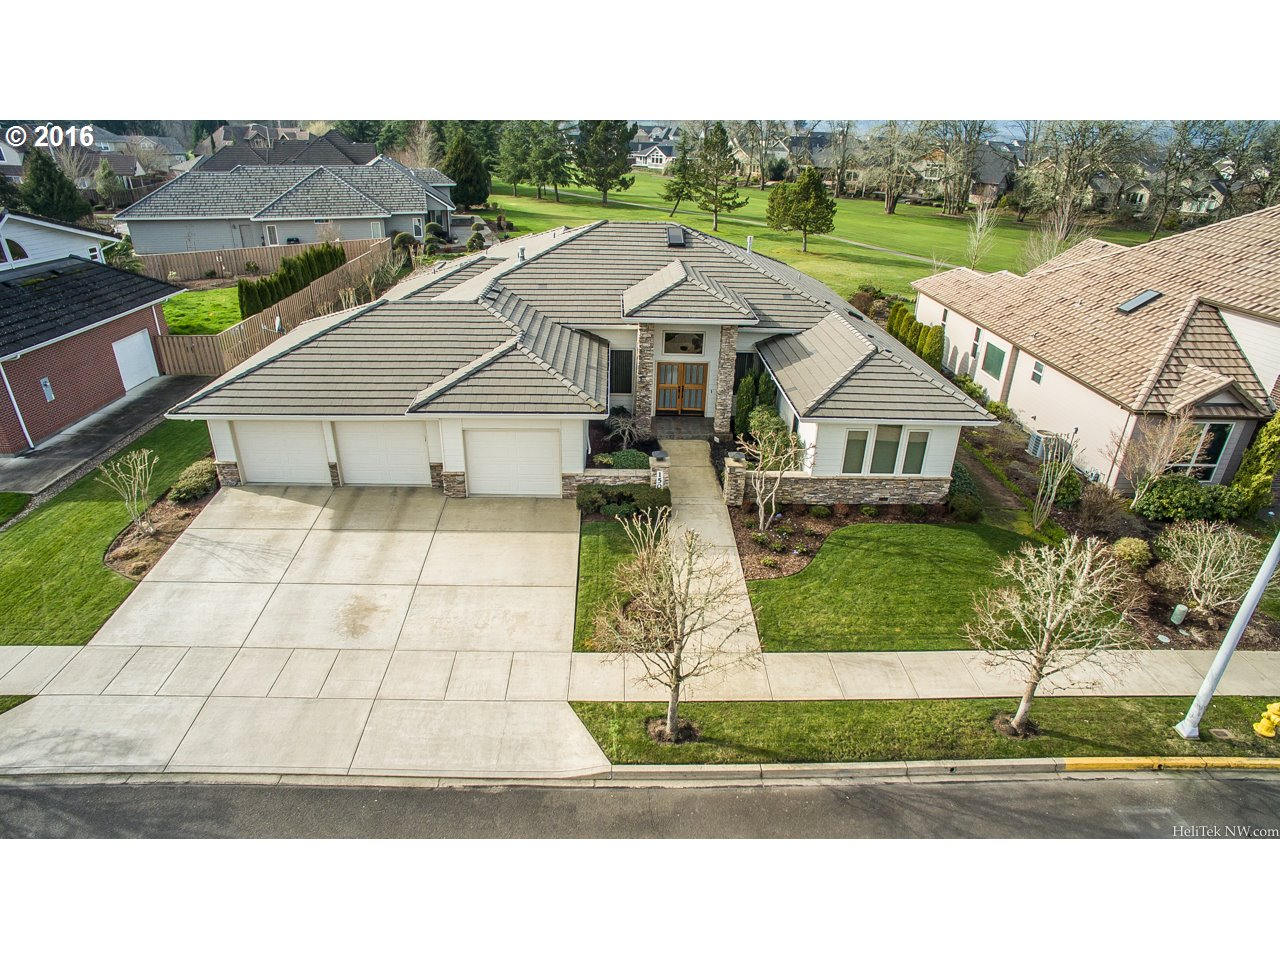 1501 NW Medinah Dr, Mcminnville, OR